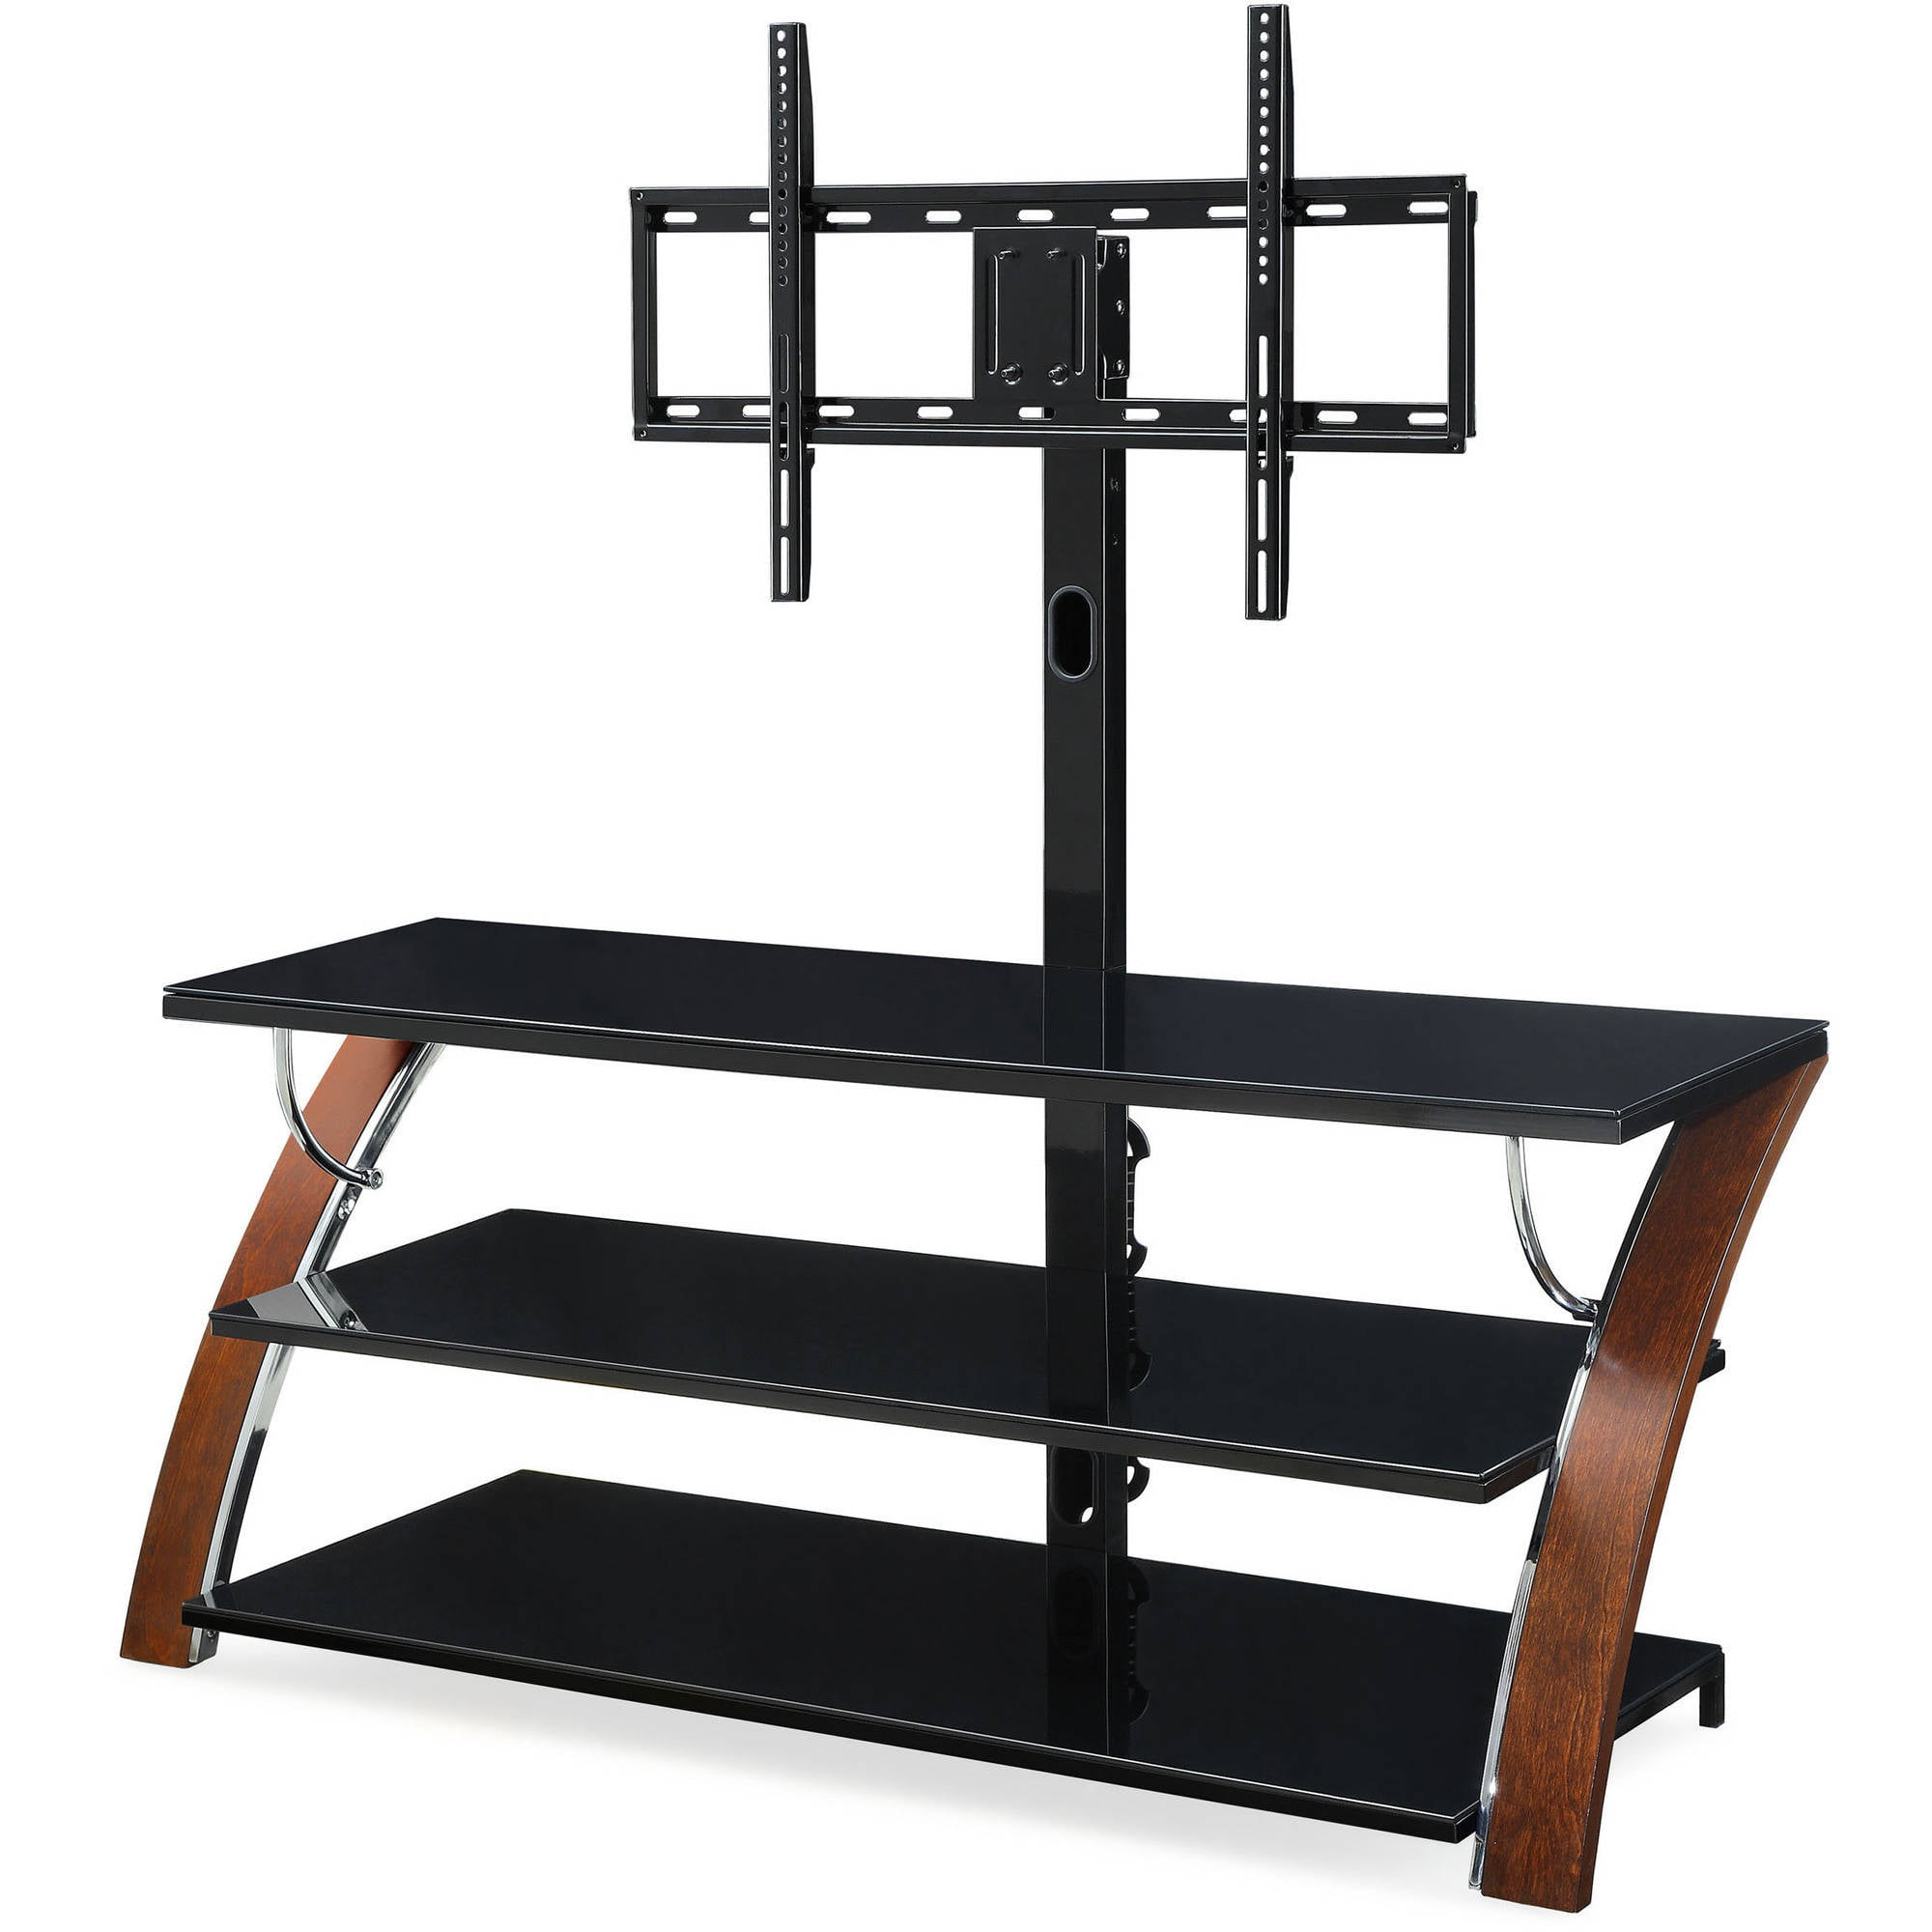 Whalen Brown Cherry 3 In 1 Flat Panel TV Stand For TVs Up To 65   Walmart .com